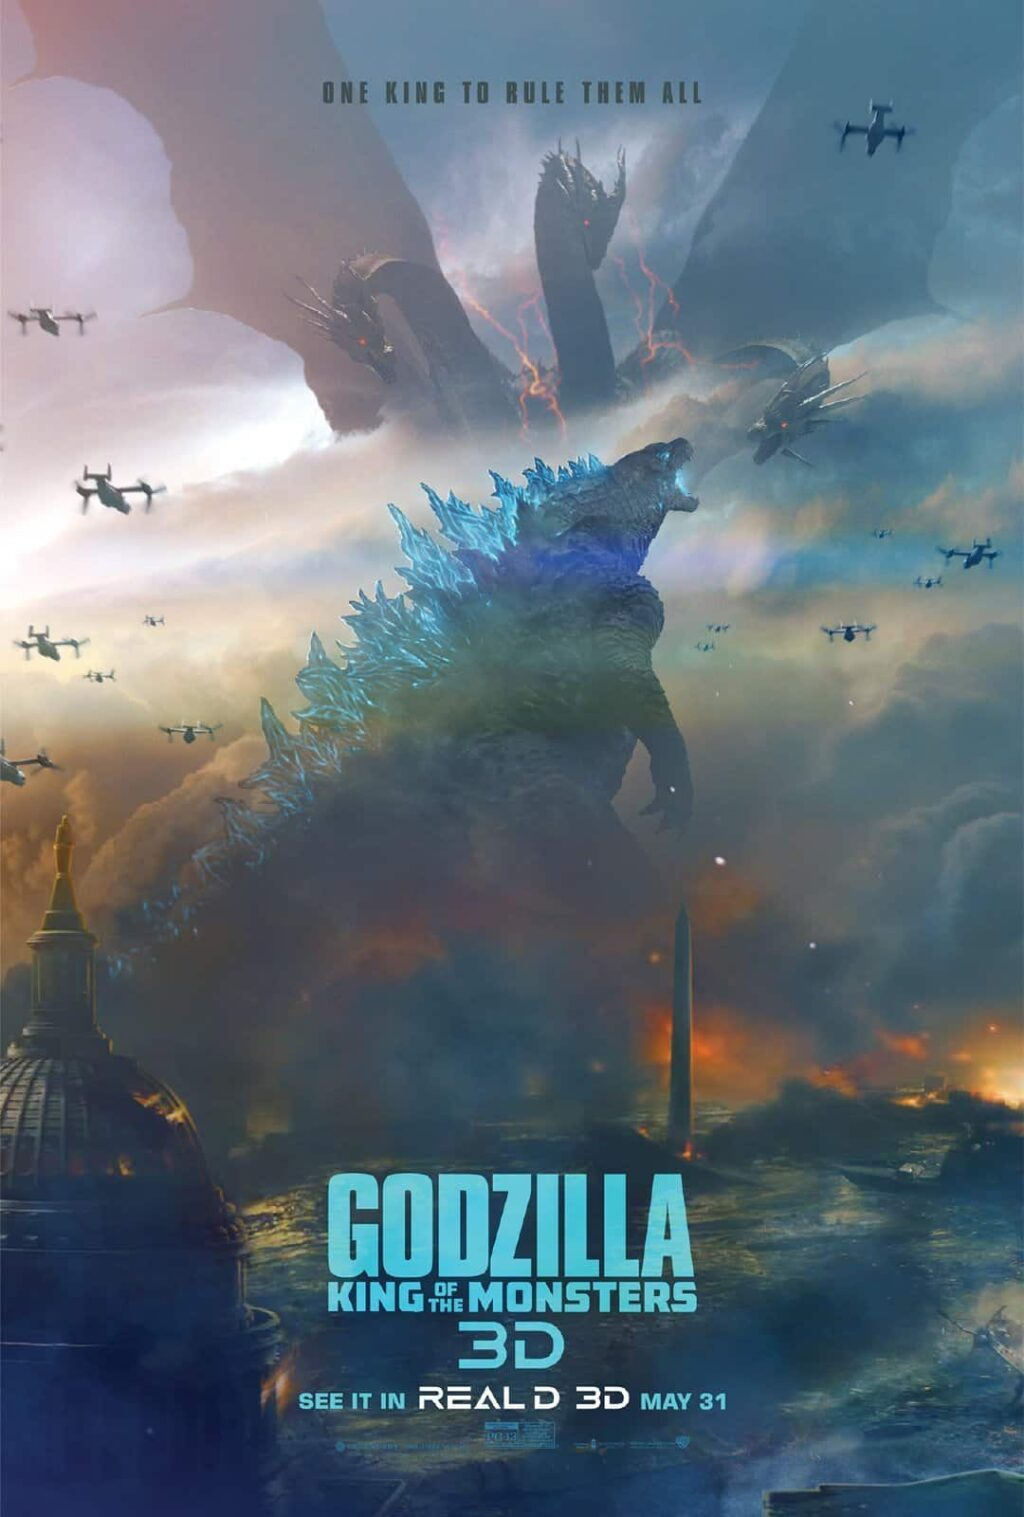 godzilla 3d 1024x1517 - 3D & IMAX Posters for GODZILLA: KING OF THE MONSTERS Highlight Glorious Battle Scenes in Store